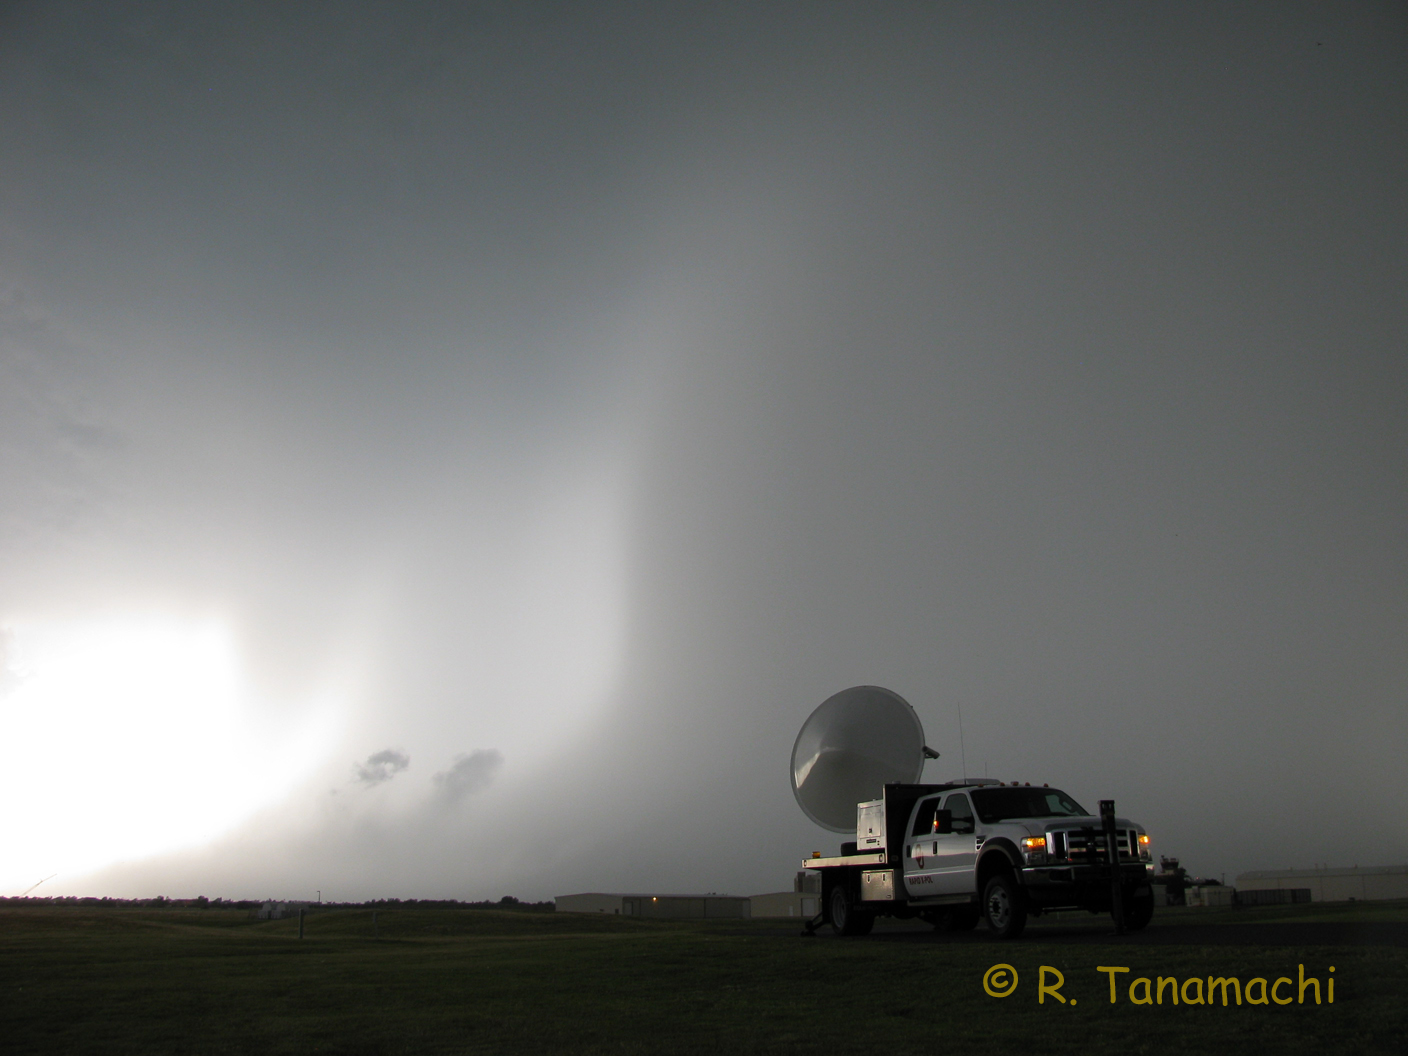 RaXPol deployed at North Base in anticipation of the coming storm.